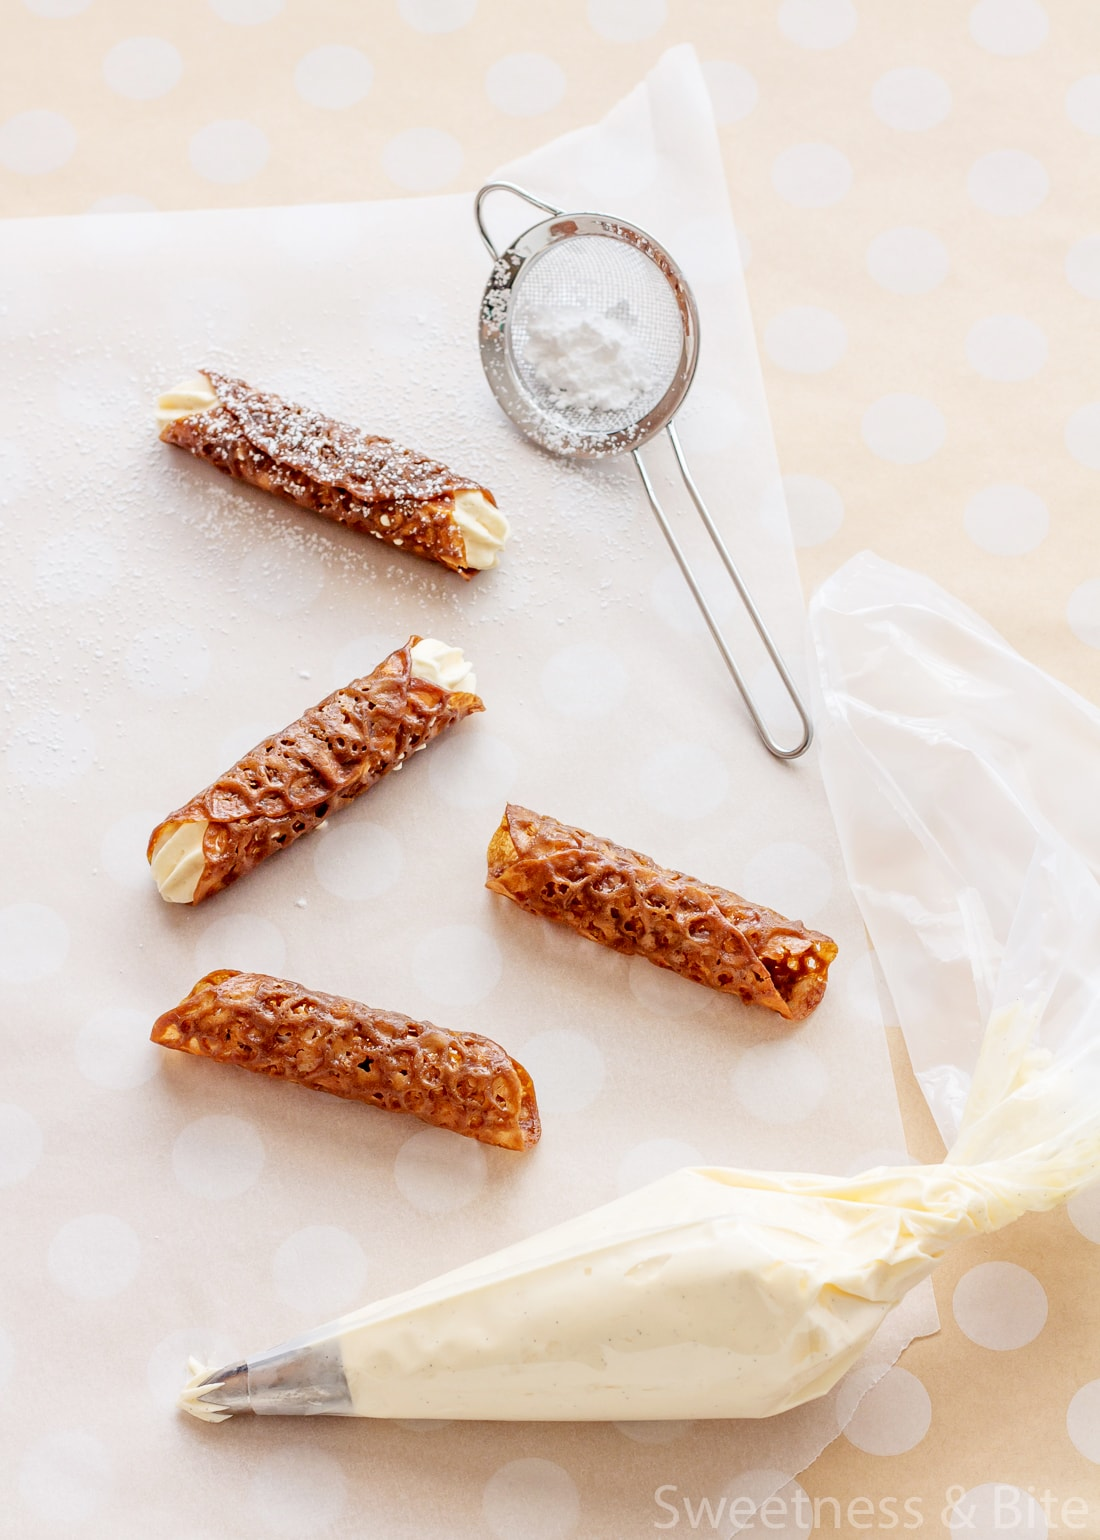 Four brandy snaps on a piece of baking paper, with a small sieve holding icing sugar.